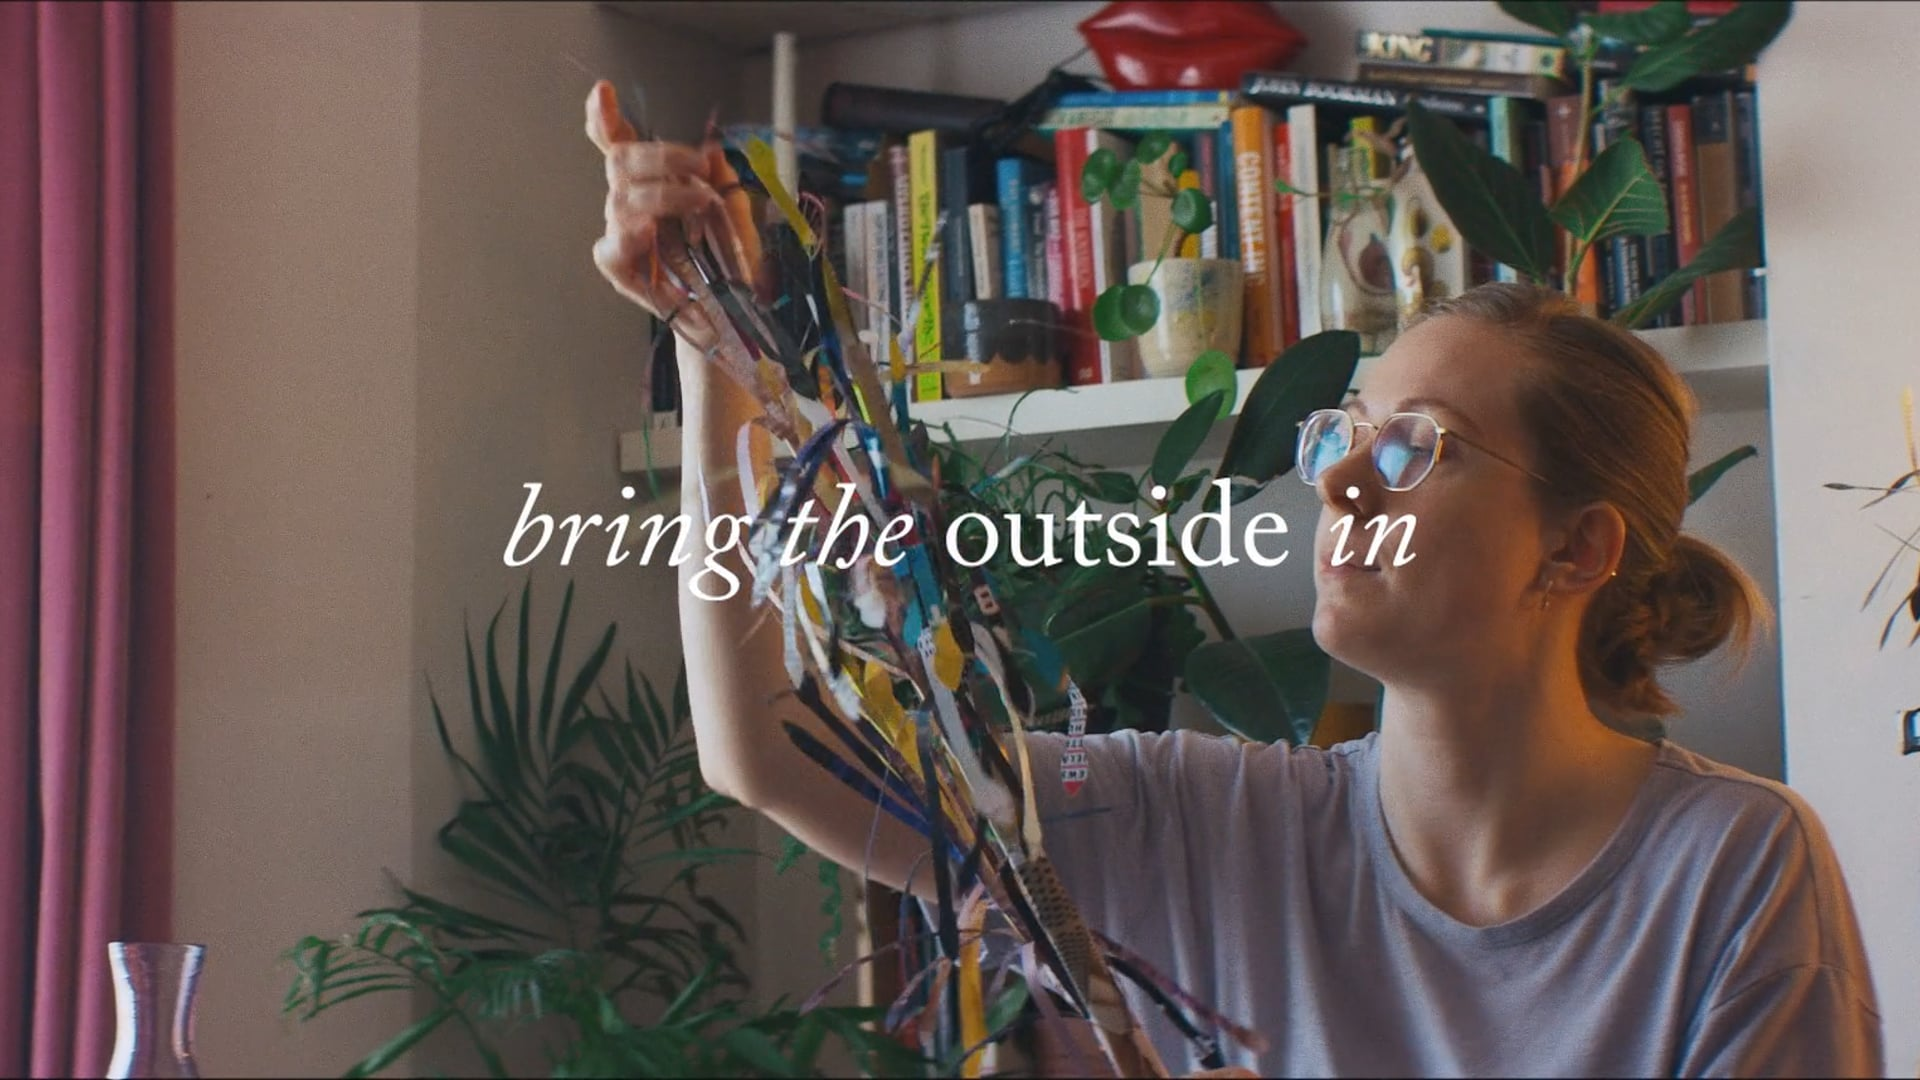 Kings College London: Bring The Outside In